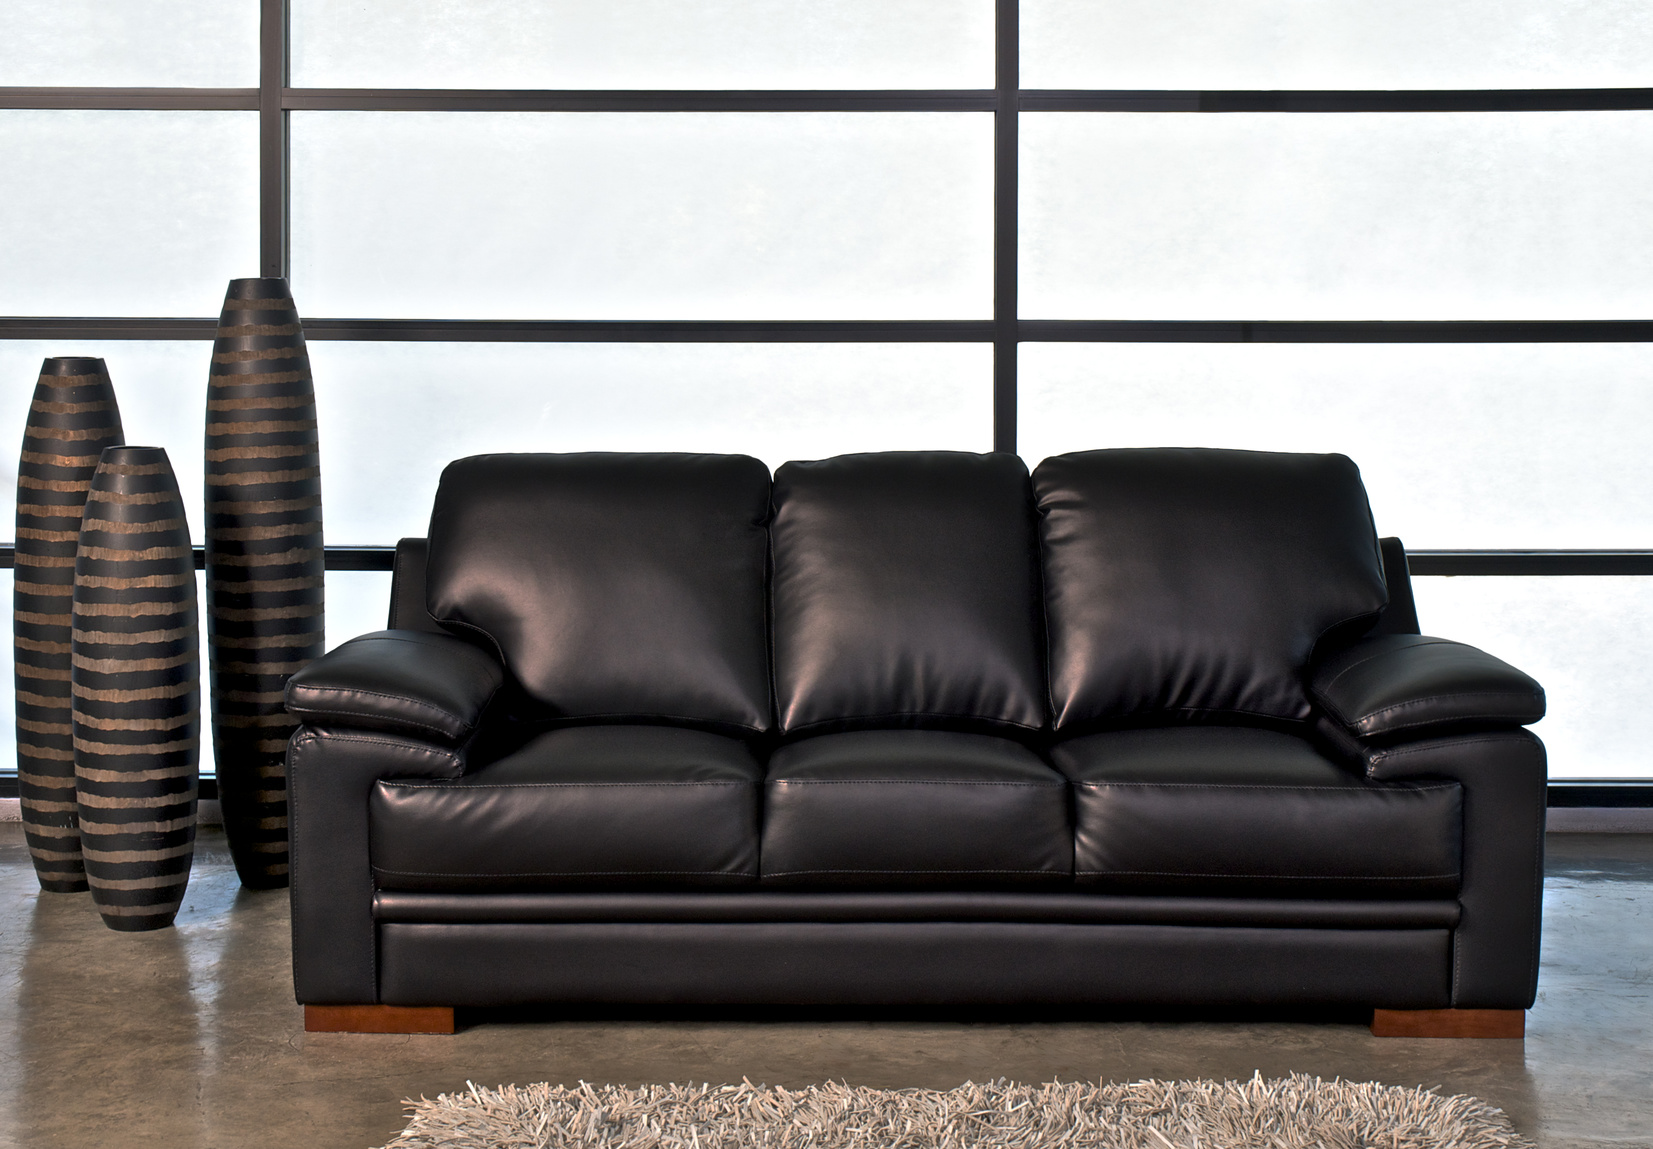 Everything You Need To Know To Care For Your Leather Furniture